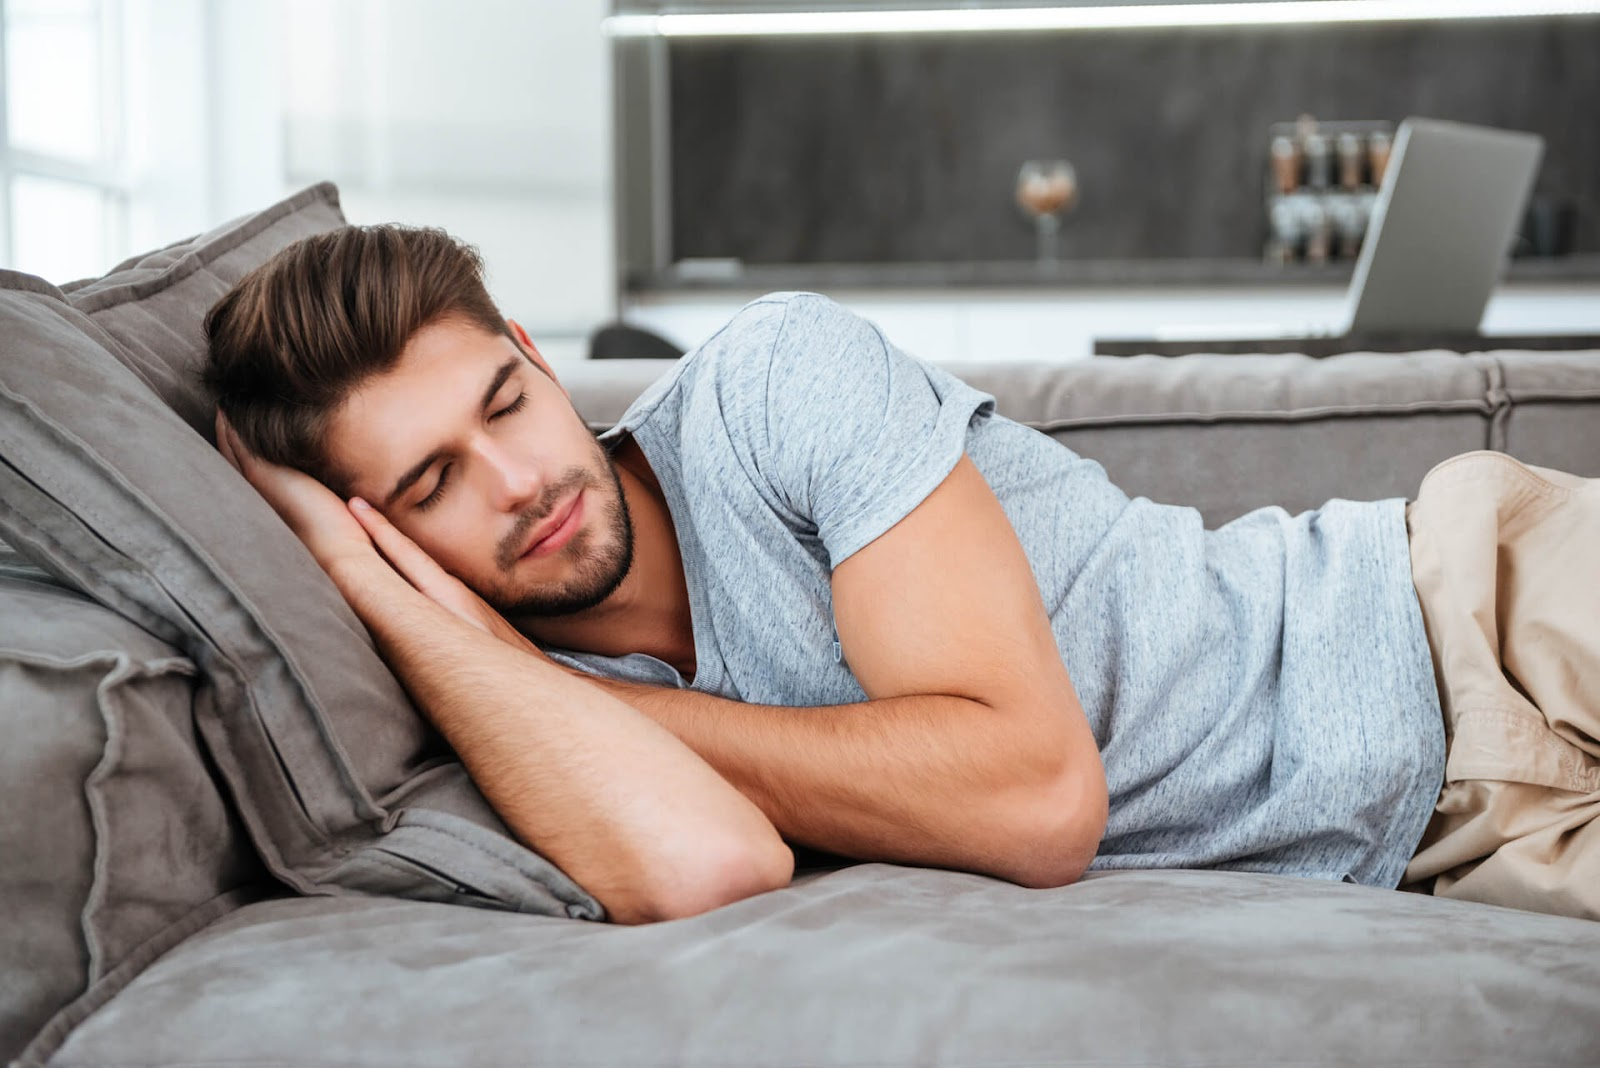 Man snoozing on couch